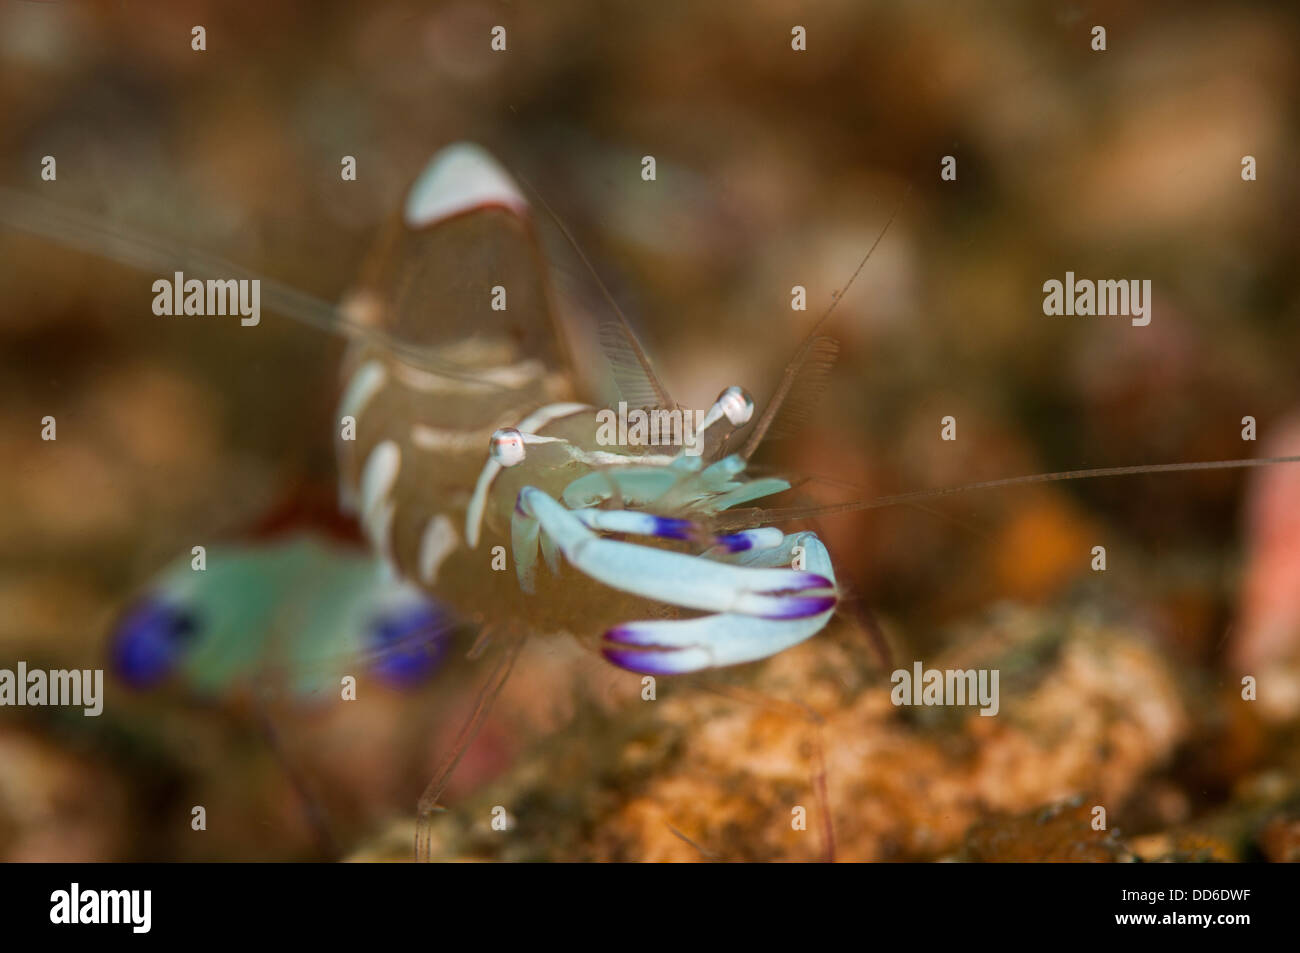 Periclemenes magnificus commensal shrimp relaxes in the Lembeh Straits of Indonesia - Stock Image